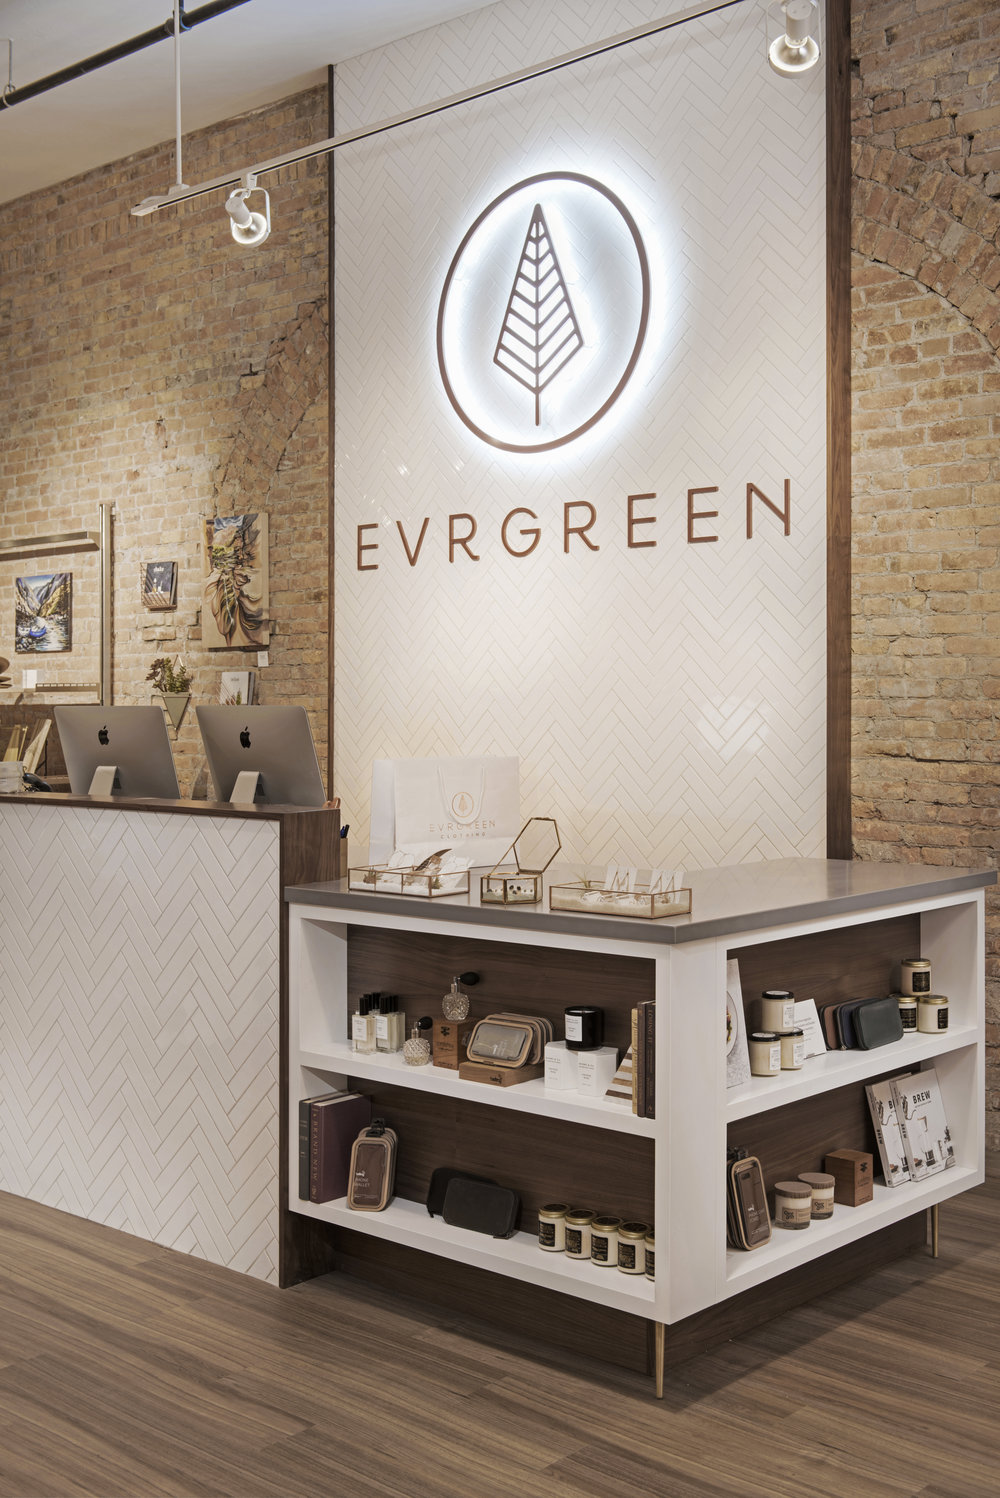 Evrgreen Clothing Company| Bozeman | MT